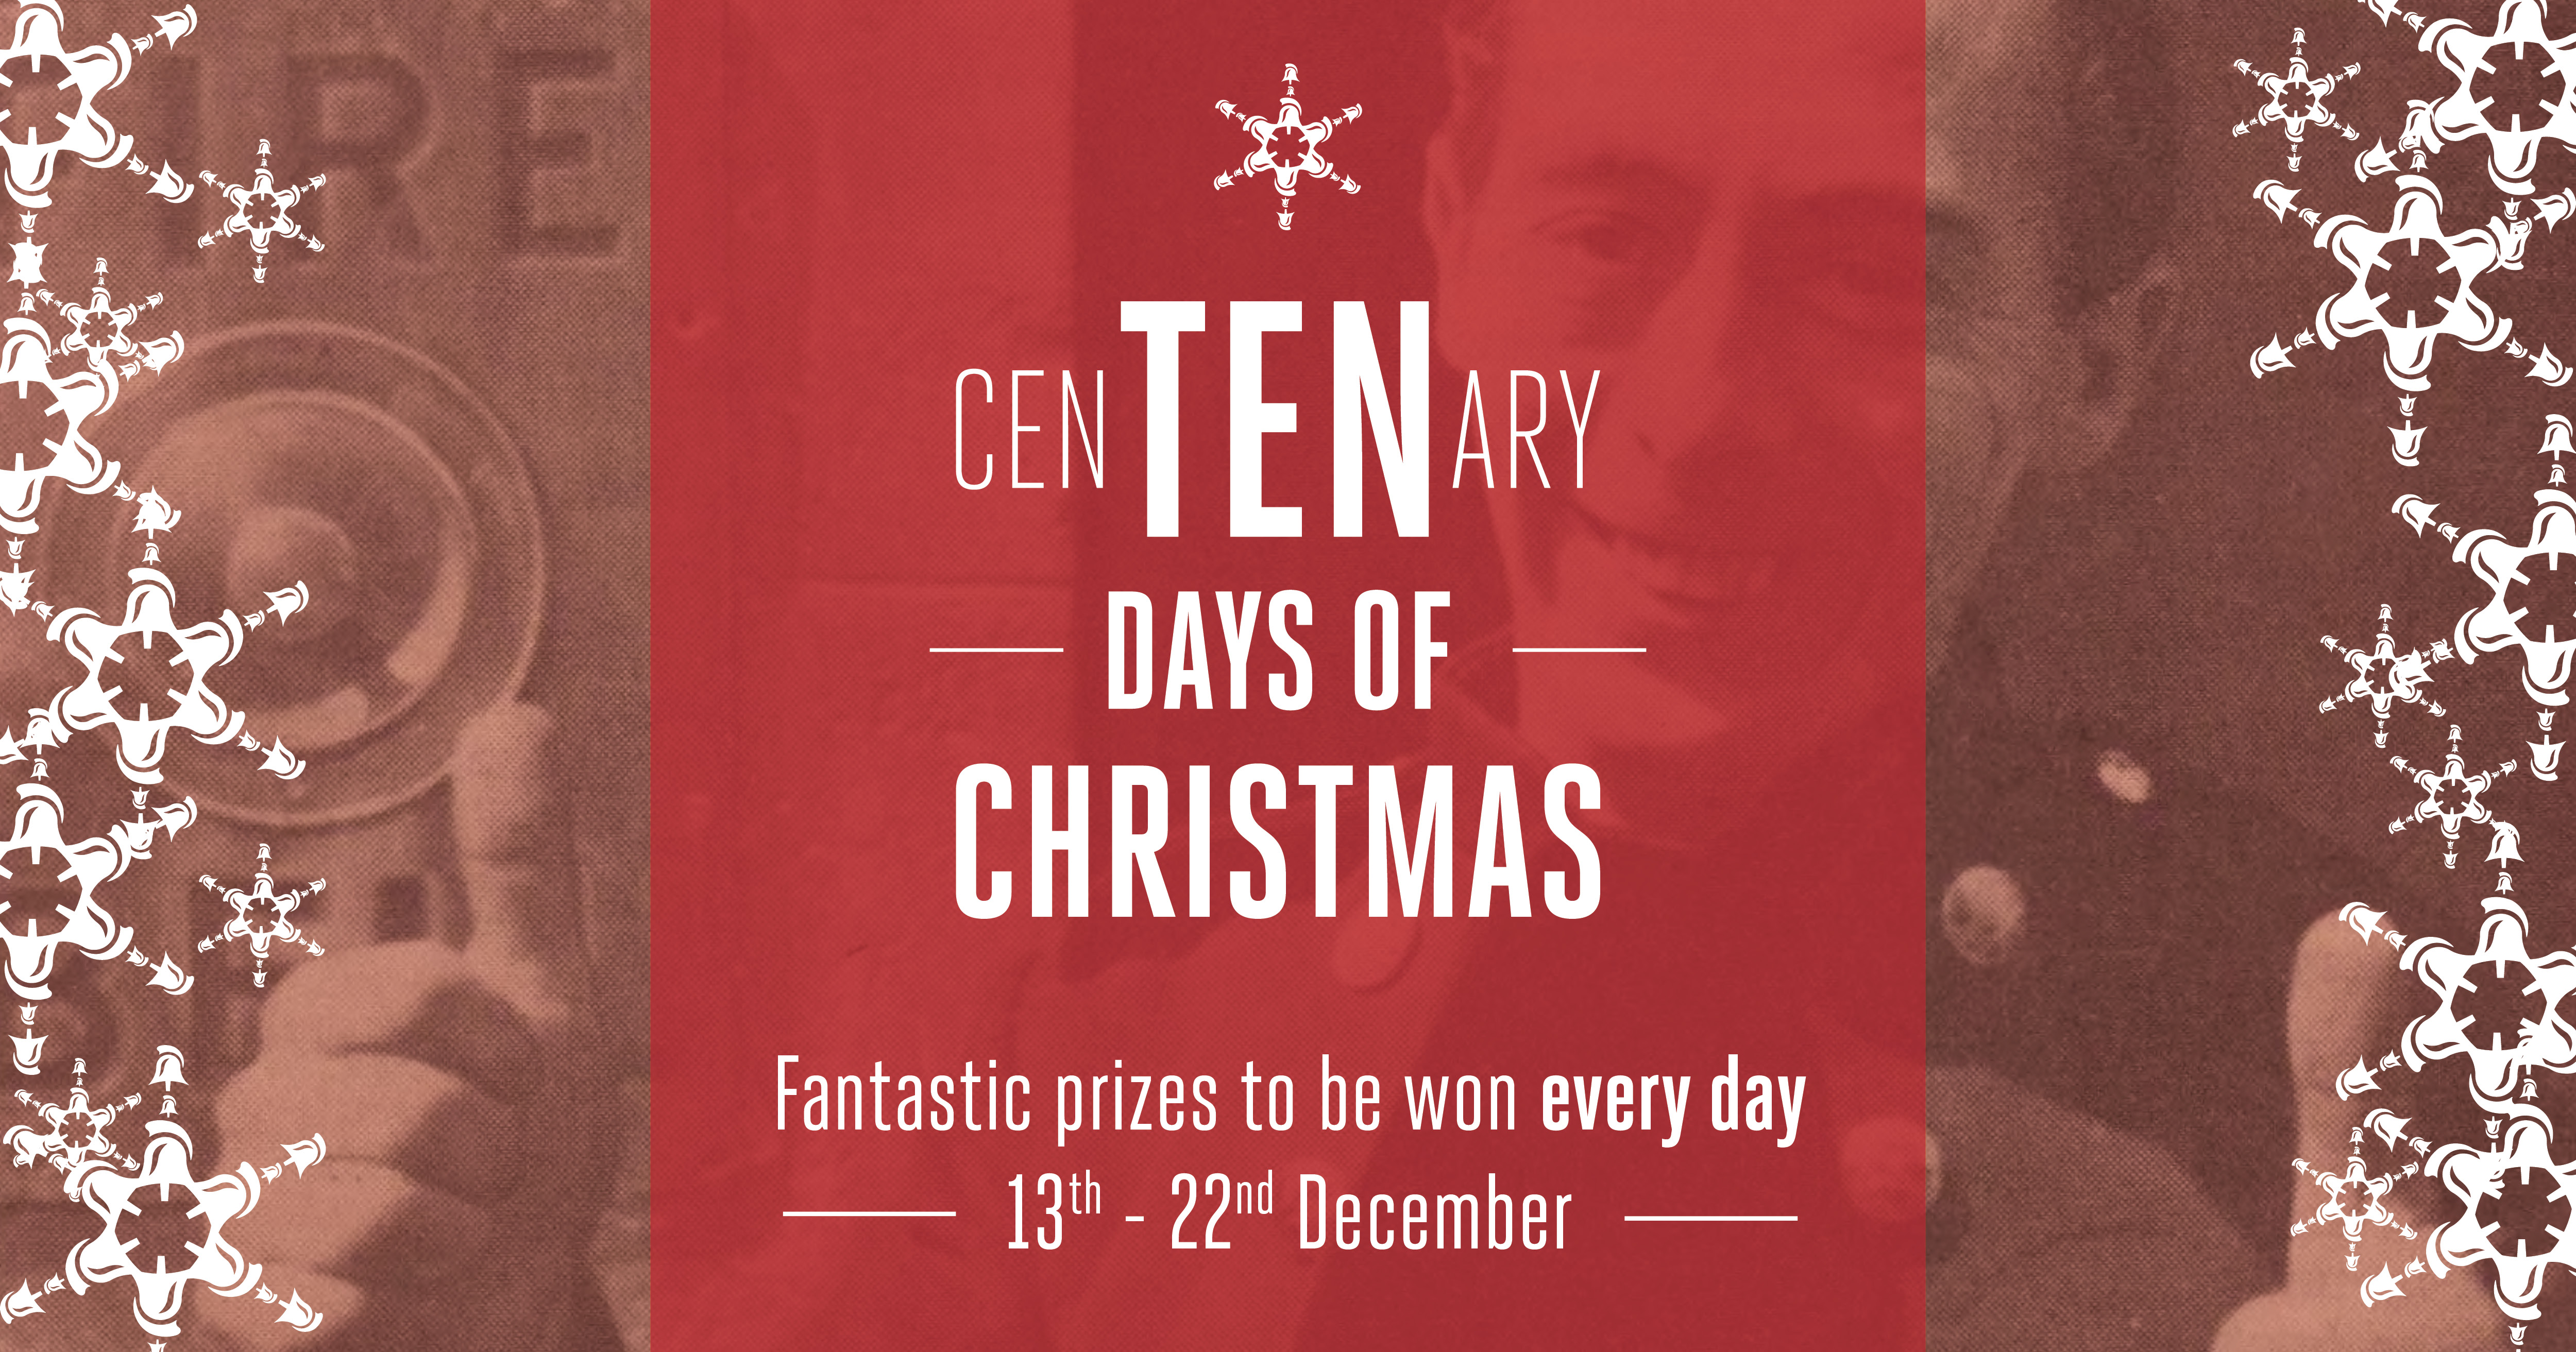 Don't miss our special Centenary Christmas Draws